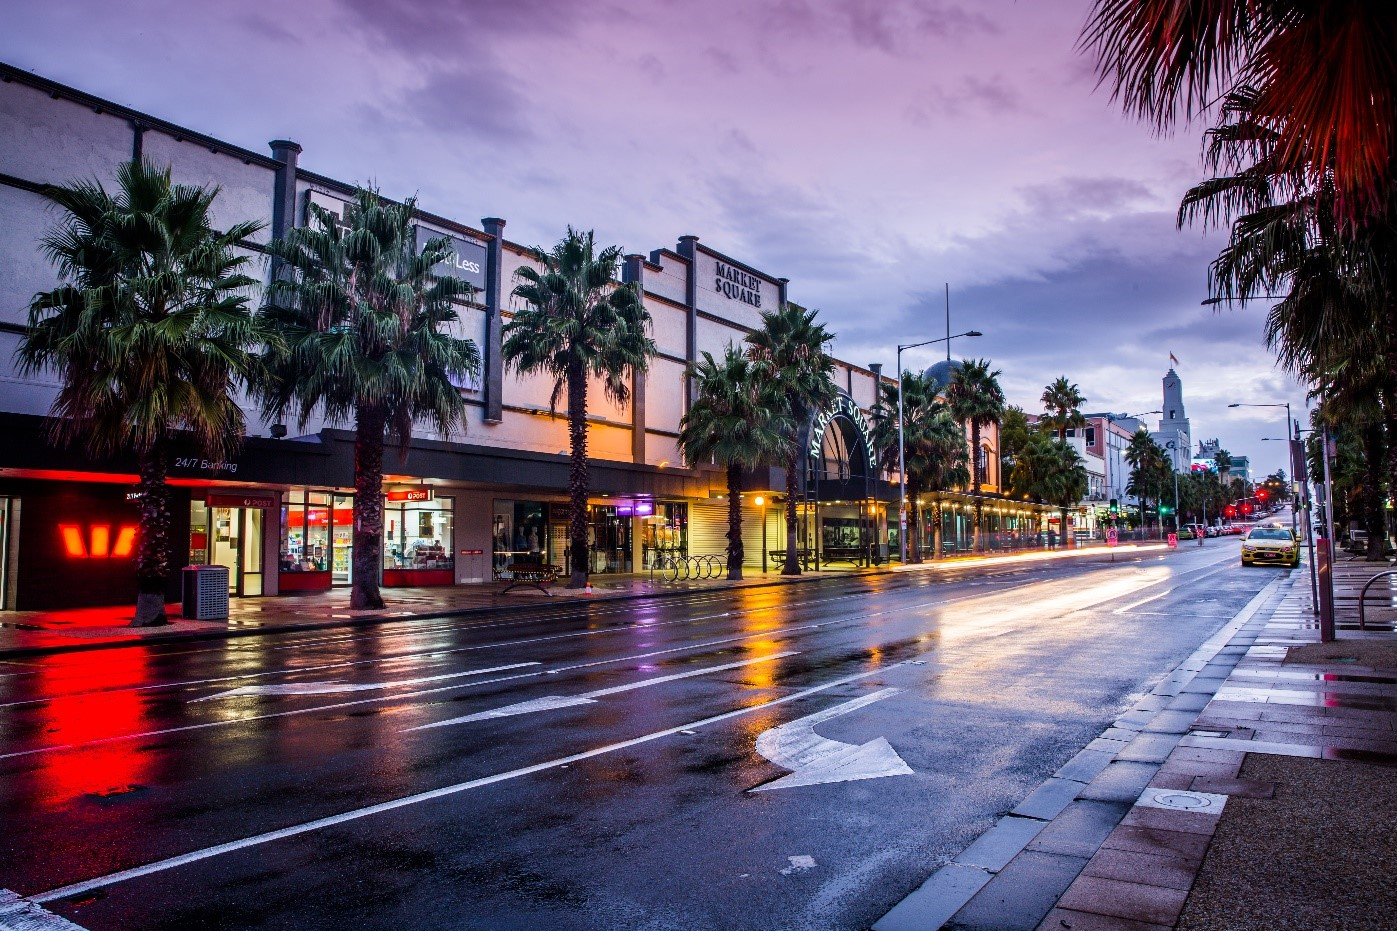 A view down Moorabool Street, central Geelong in the early evening. The road is wet and the light from Westpac and the Market Square shops is reflecting on the tarmac.